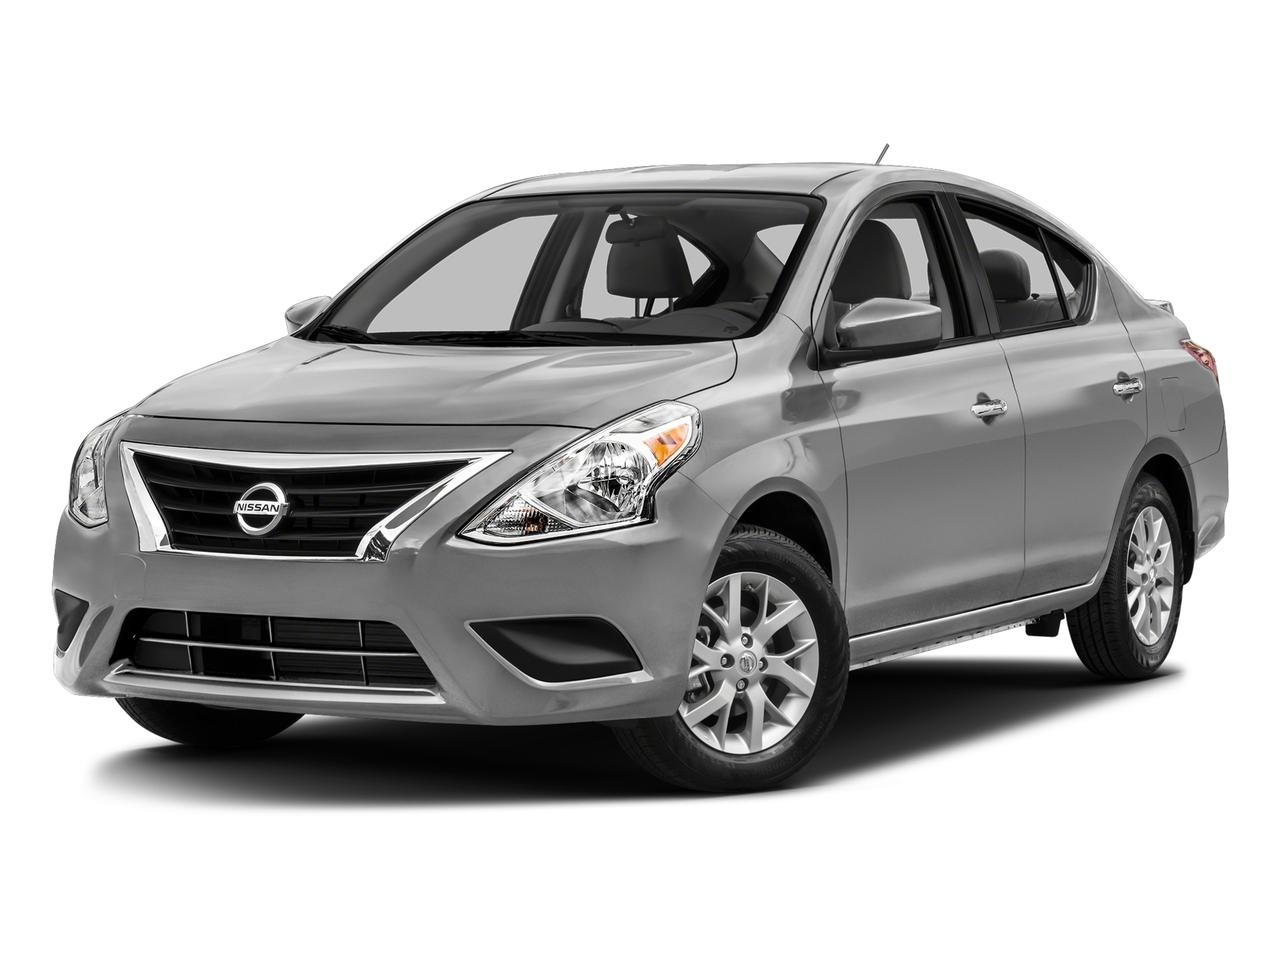 2016 Nissan Versa Vehicle Photo in San Antonio, TX 78257